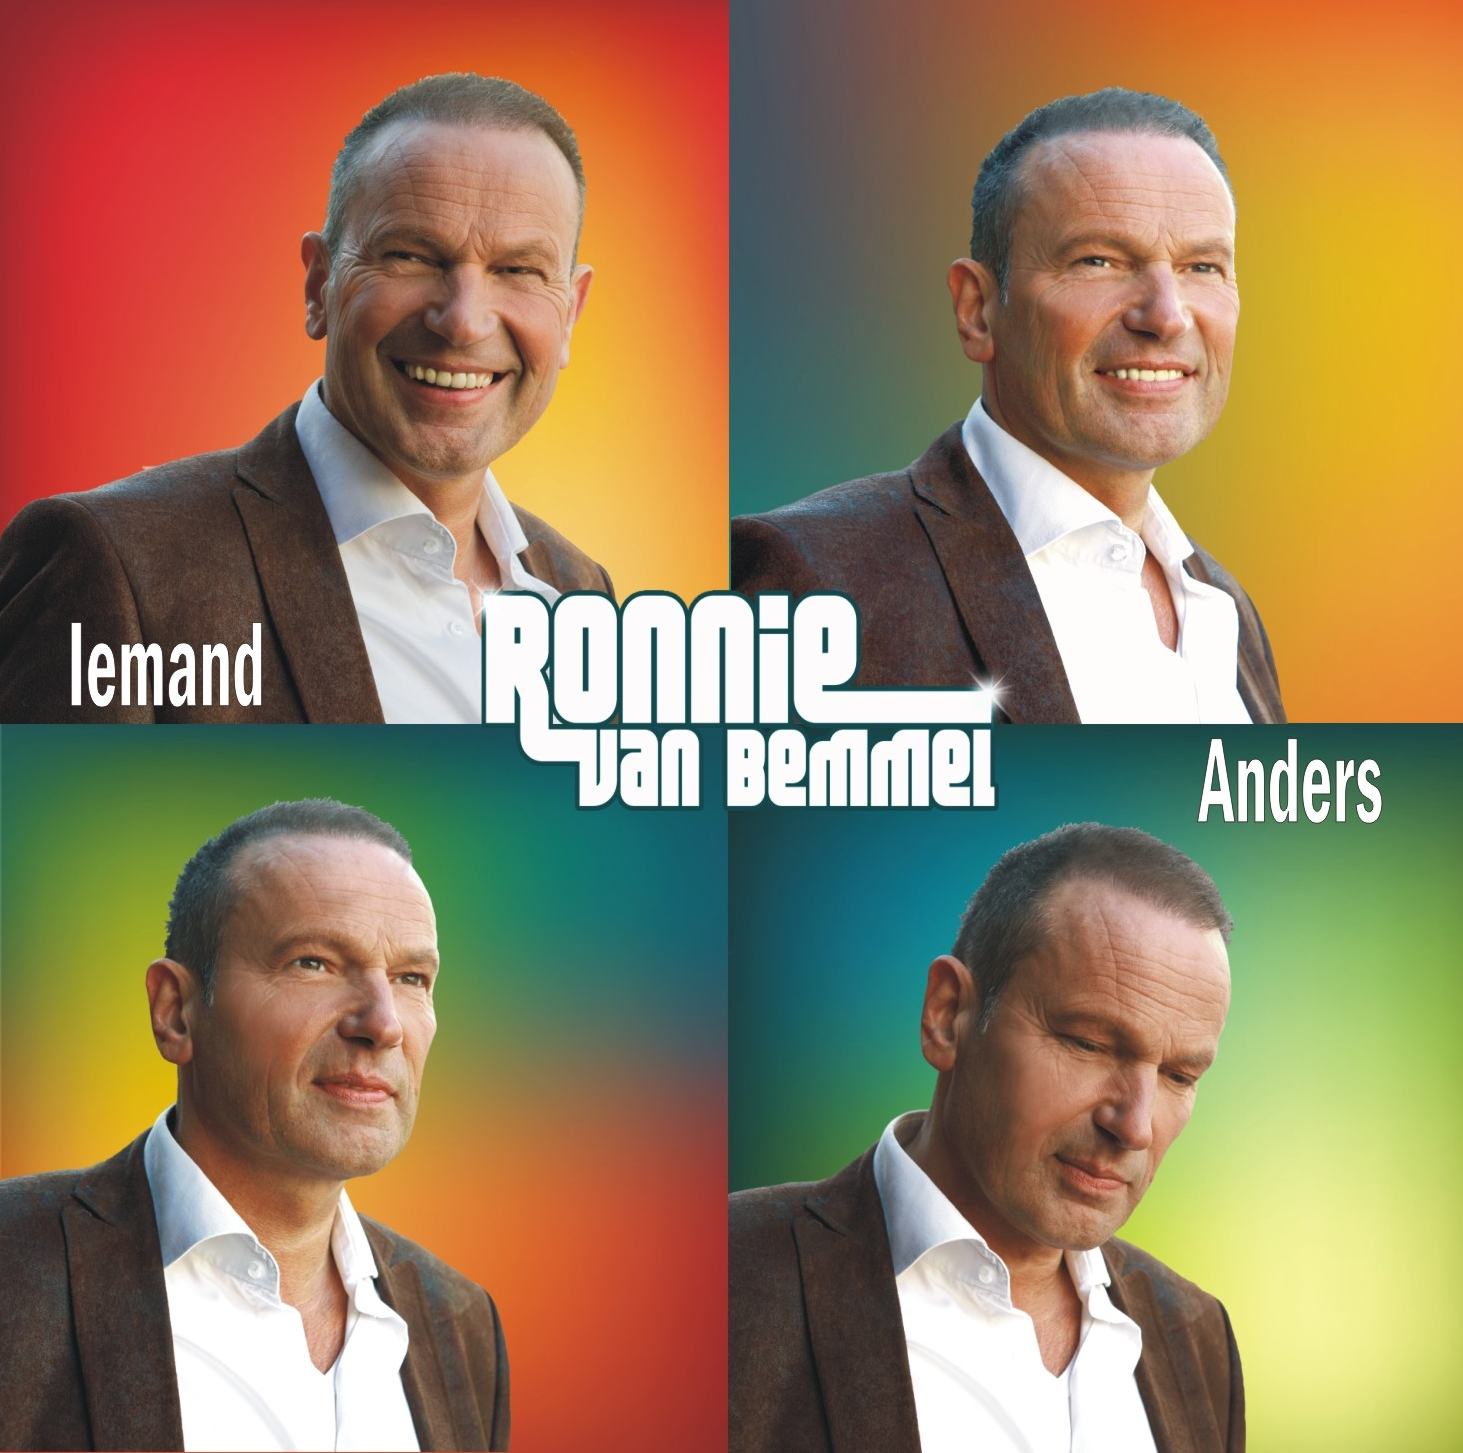 Iemand Anders (Album)